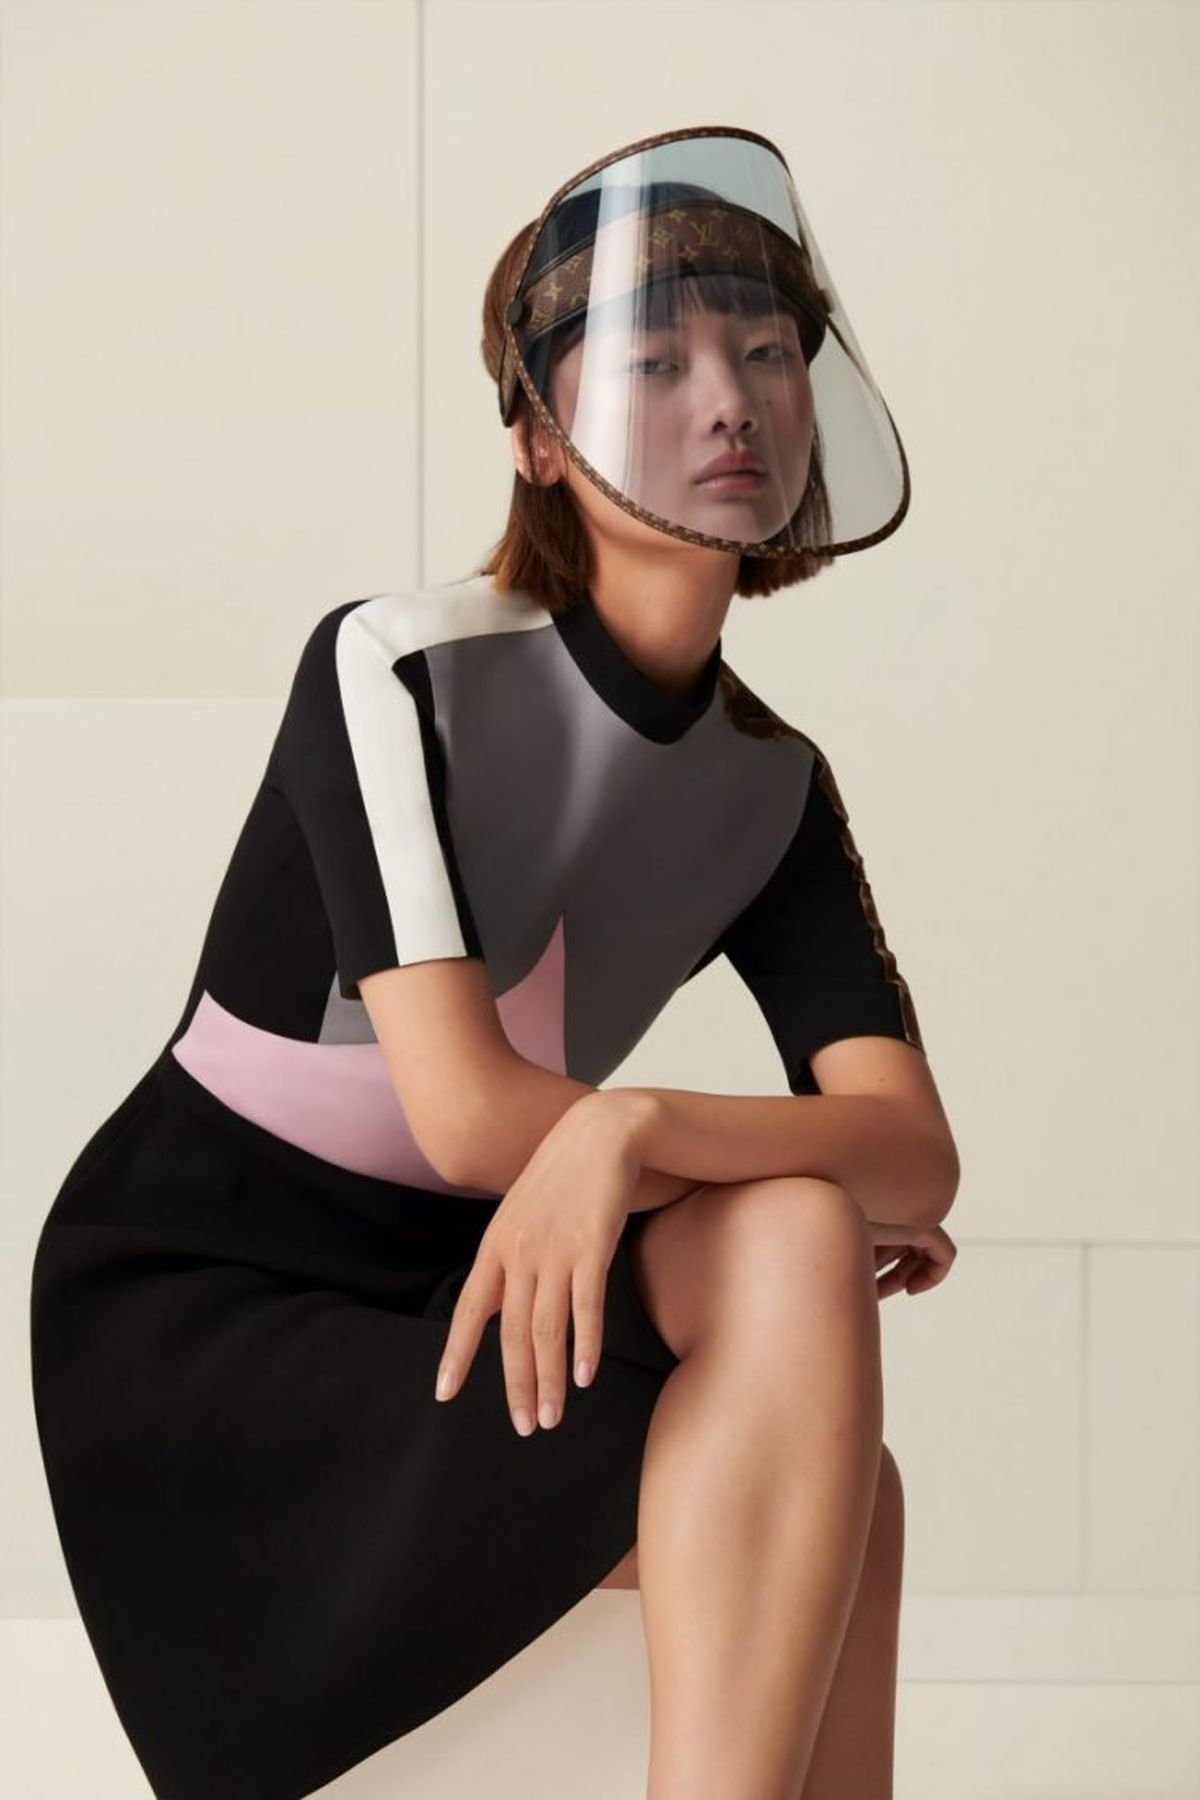 In luxury, stupidity climbs like ivy. Louis Vuitton will offer a protective face shield for $ 1,000.